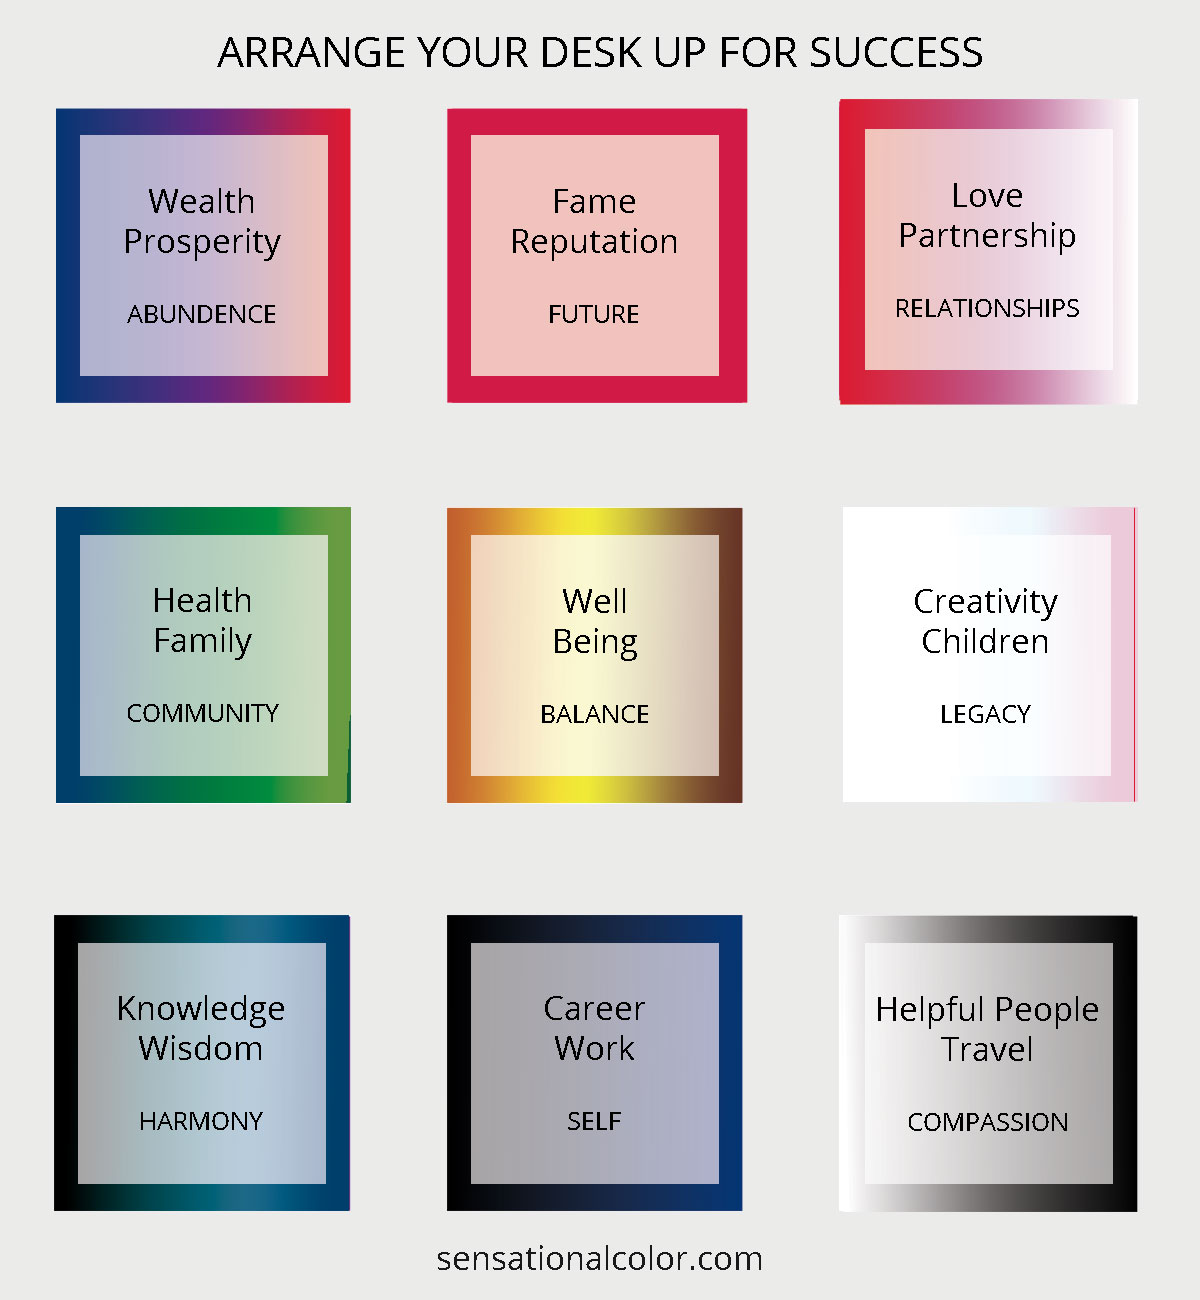 Feng shui your desk for success sensational color using a special blueprint called a bagua map you can follow some basic rules for adding feng shui to your desktop and attain the goals you seek malvernweather Image collections